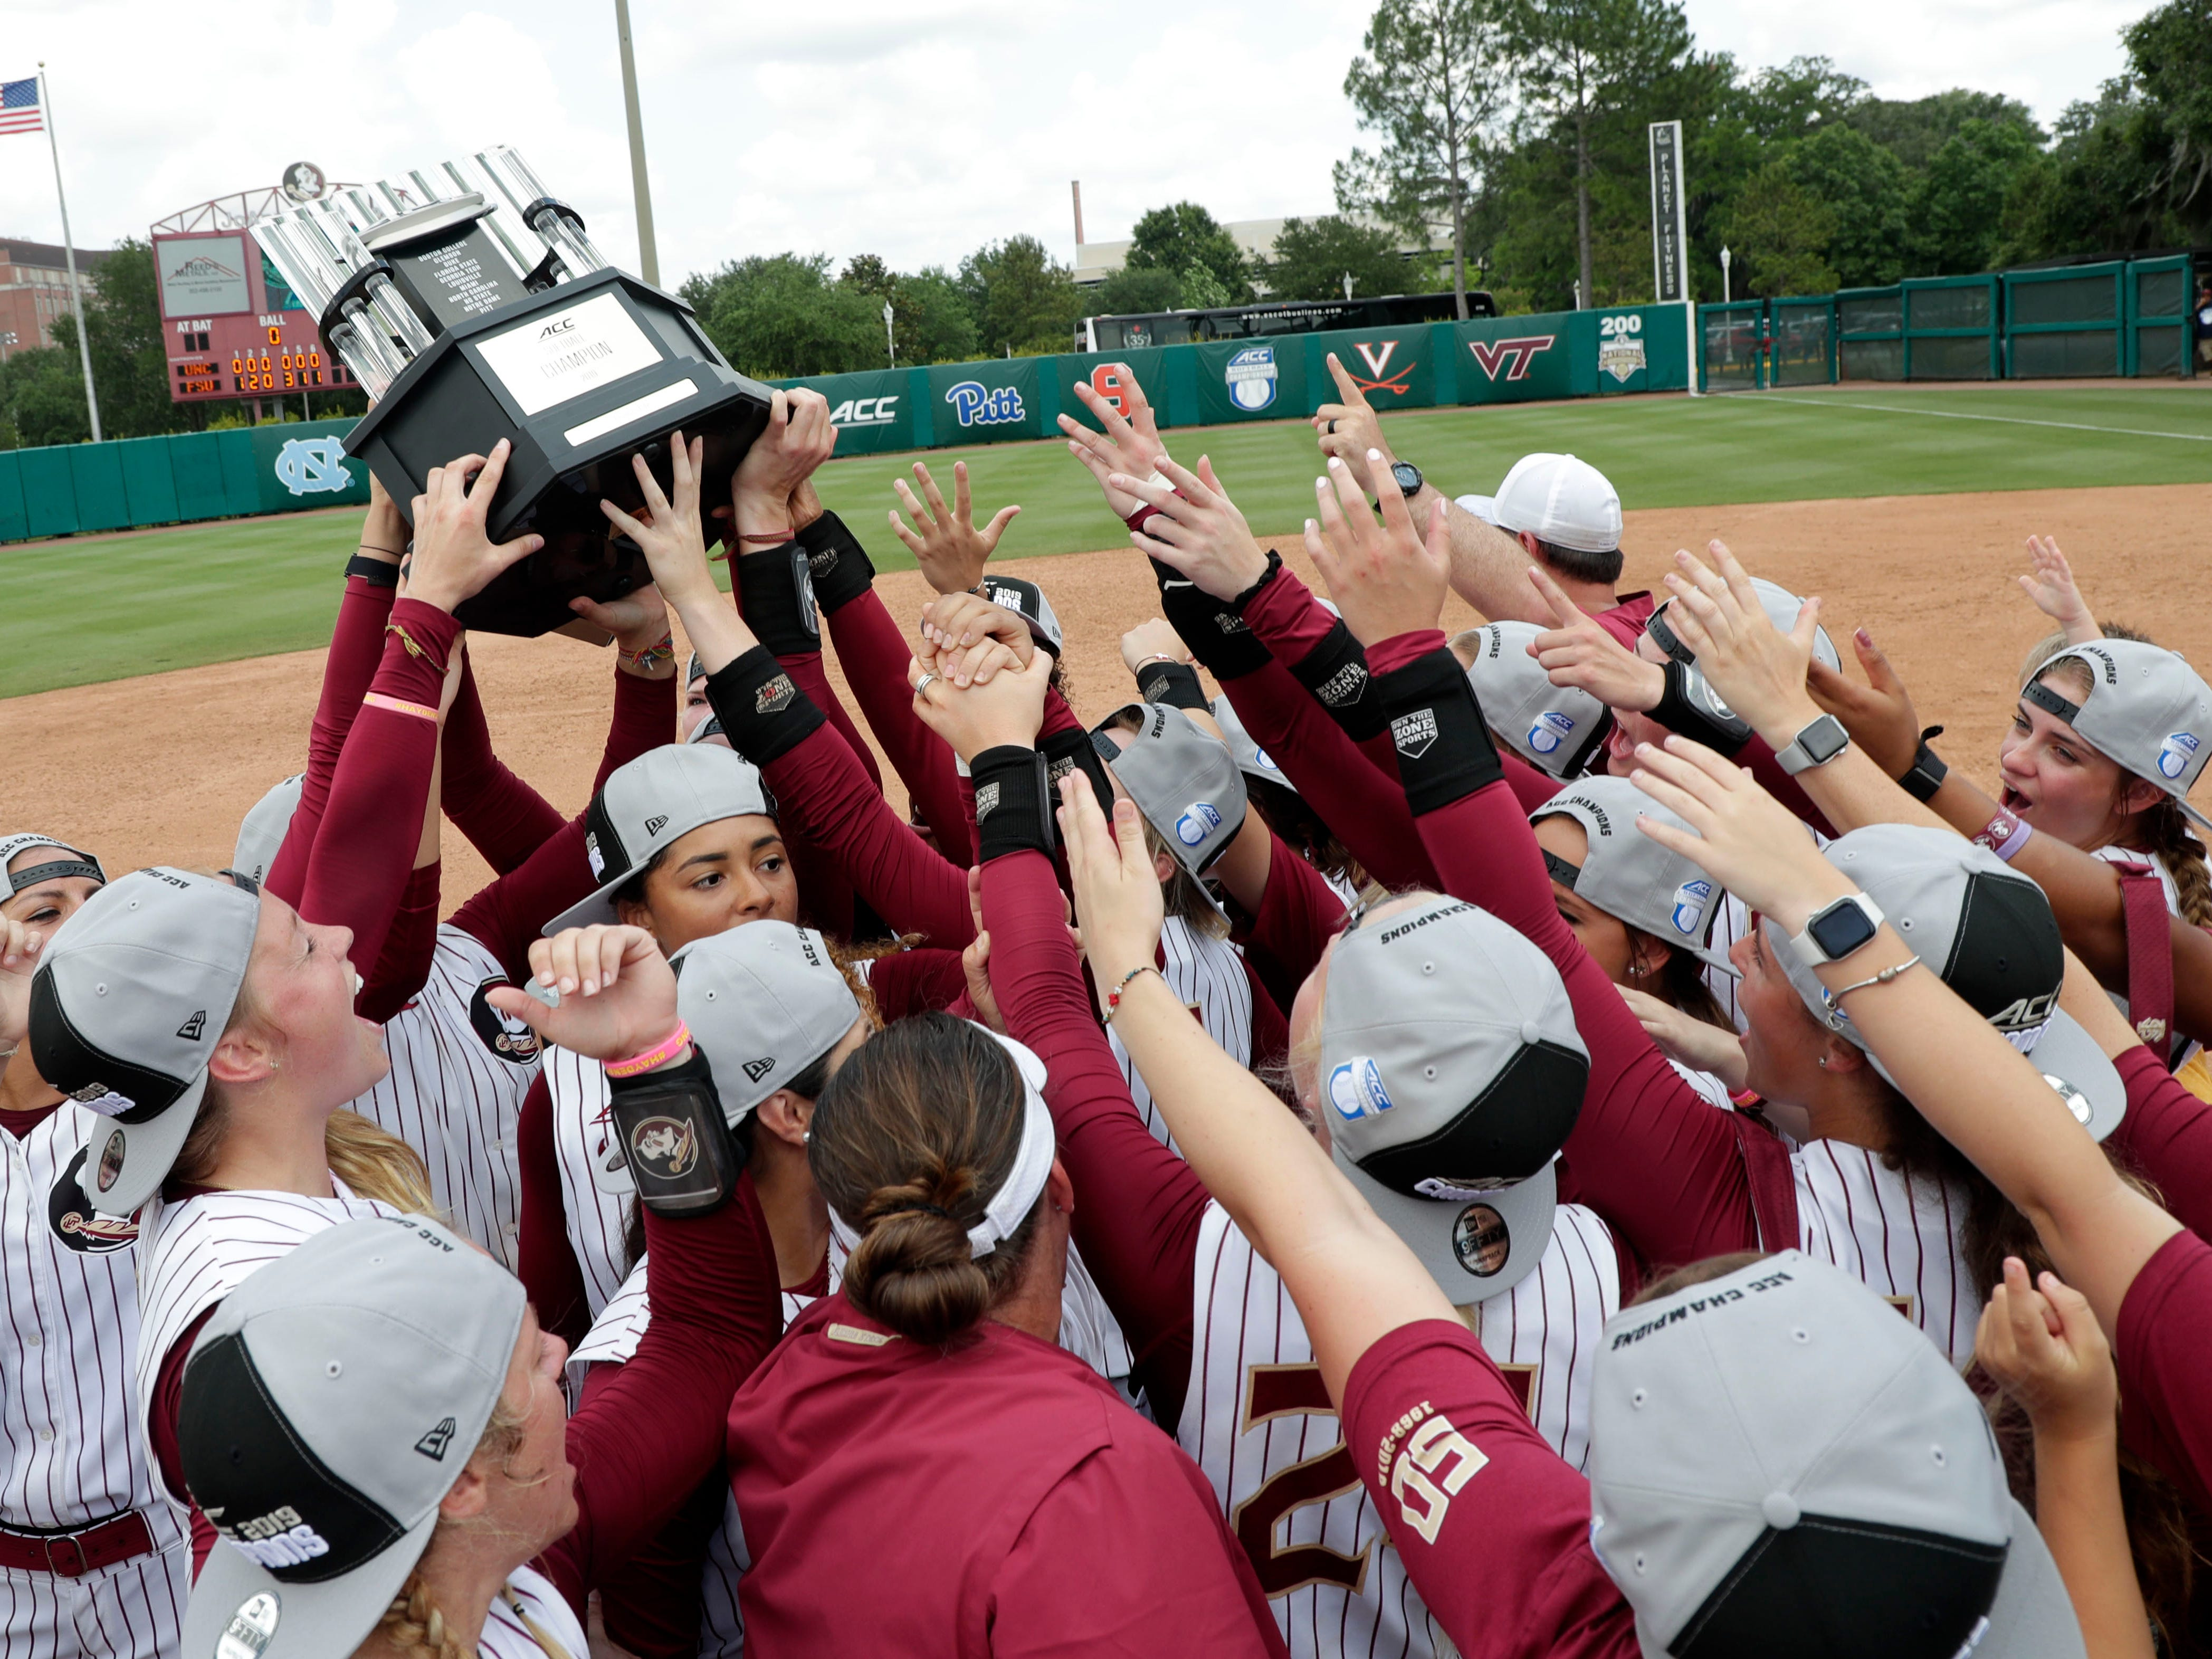 The Florida State Seminoles celebrate their victory over the UNC Tar Heels for the ACC Softball Championship title Saturday, May 11, 2019.